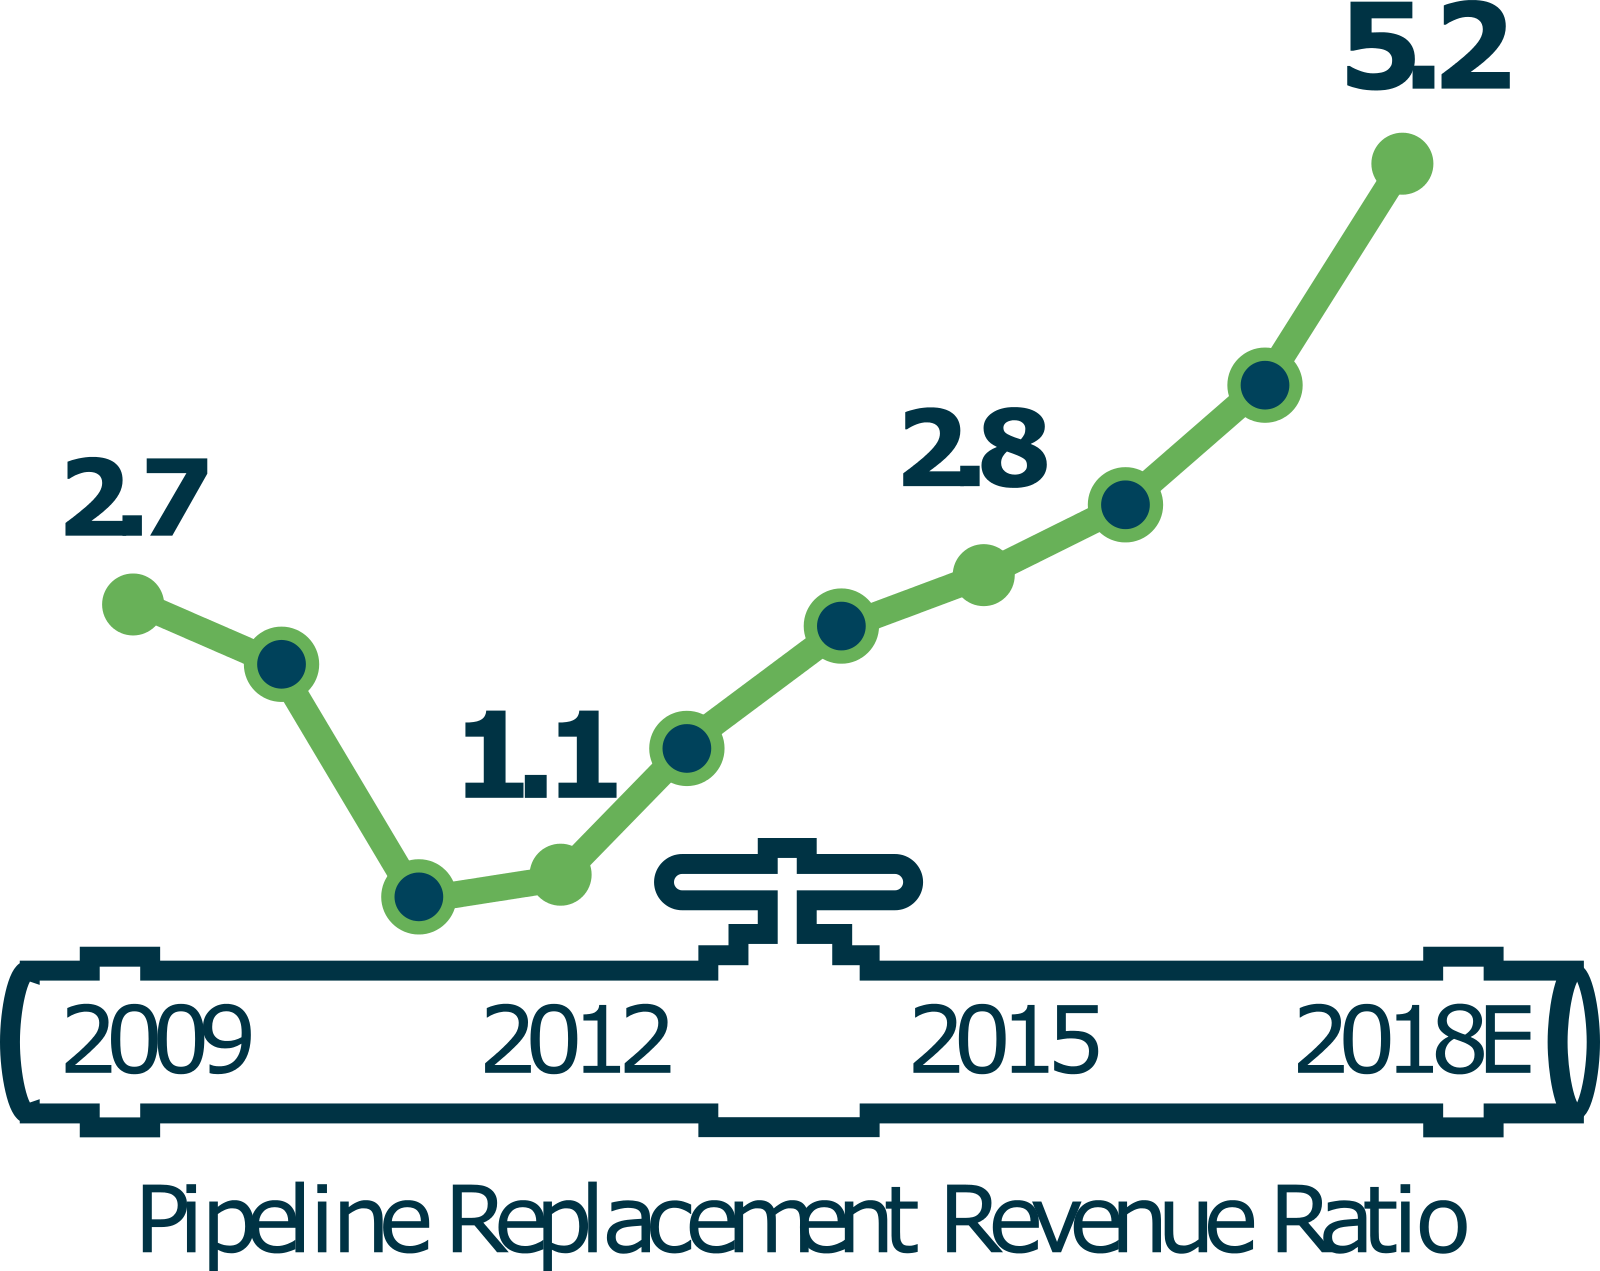 The Pipeline Replacement Revenue Ratio has shifted markedly—back to levels not seen since 2012.